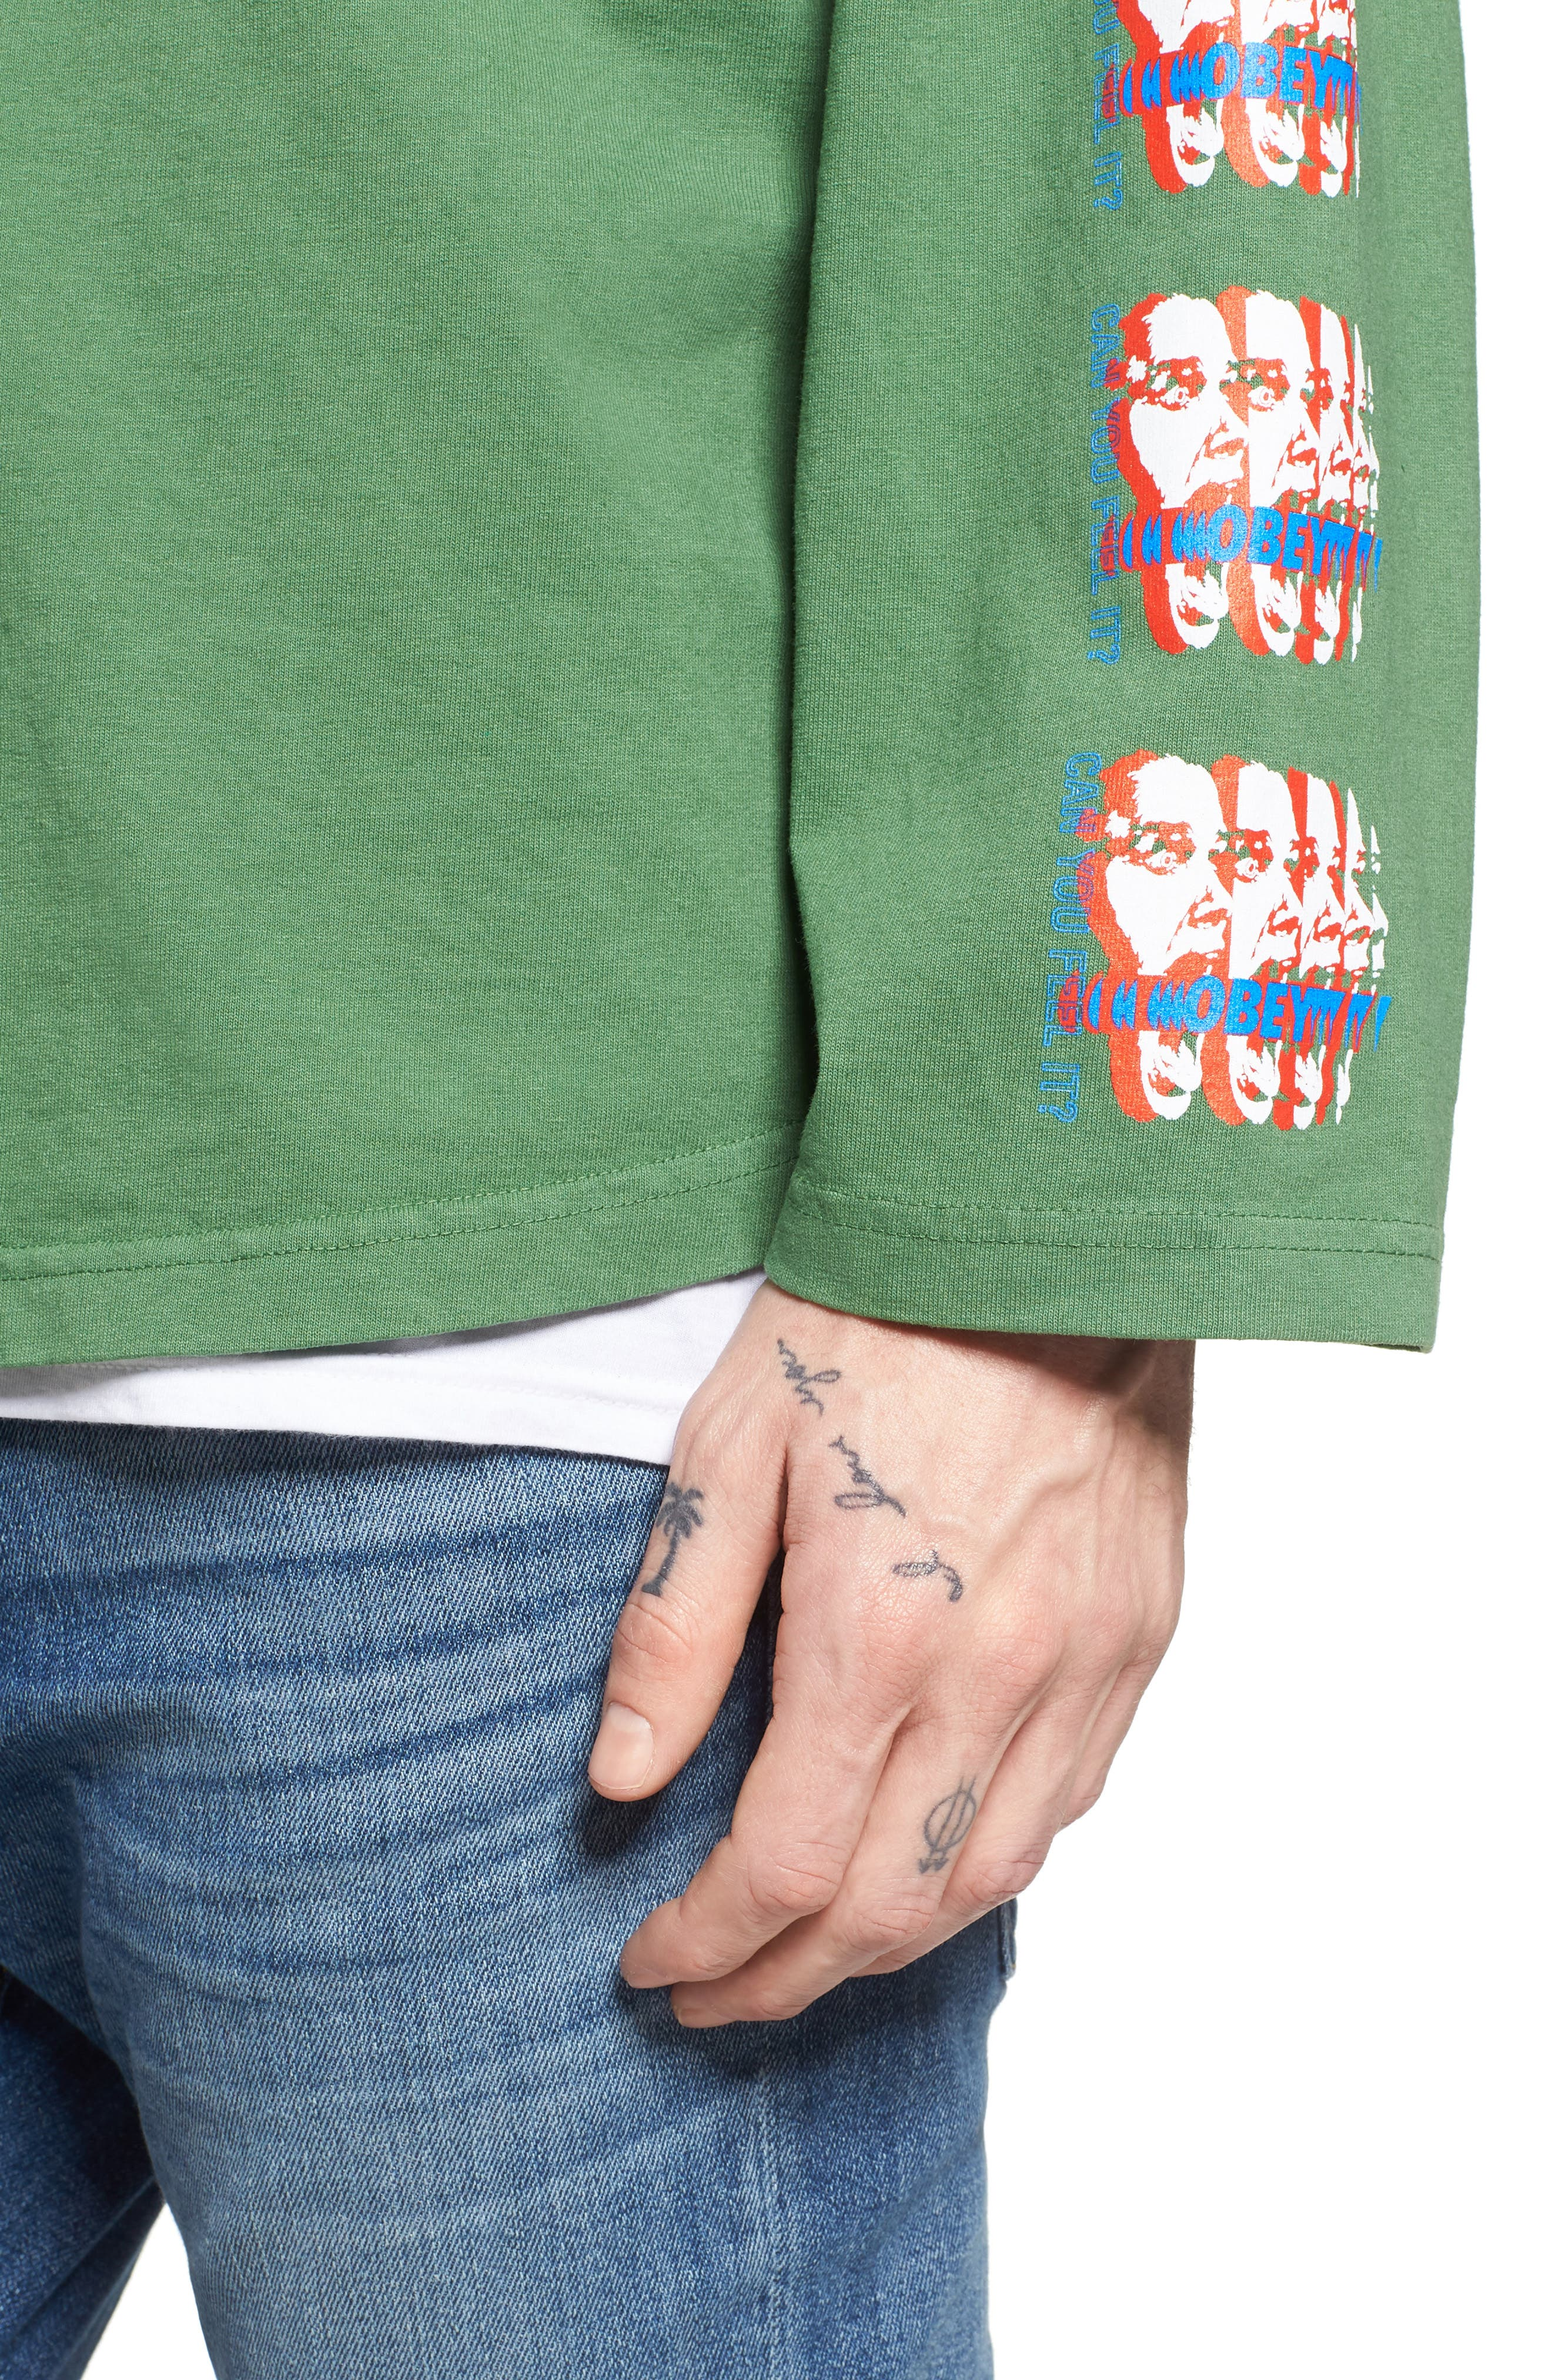 Can You Feel It Hockey Jersey,                             Alternate thumbnail 4, color,                             Vintage Green